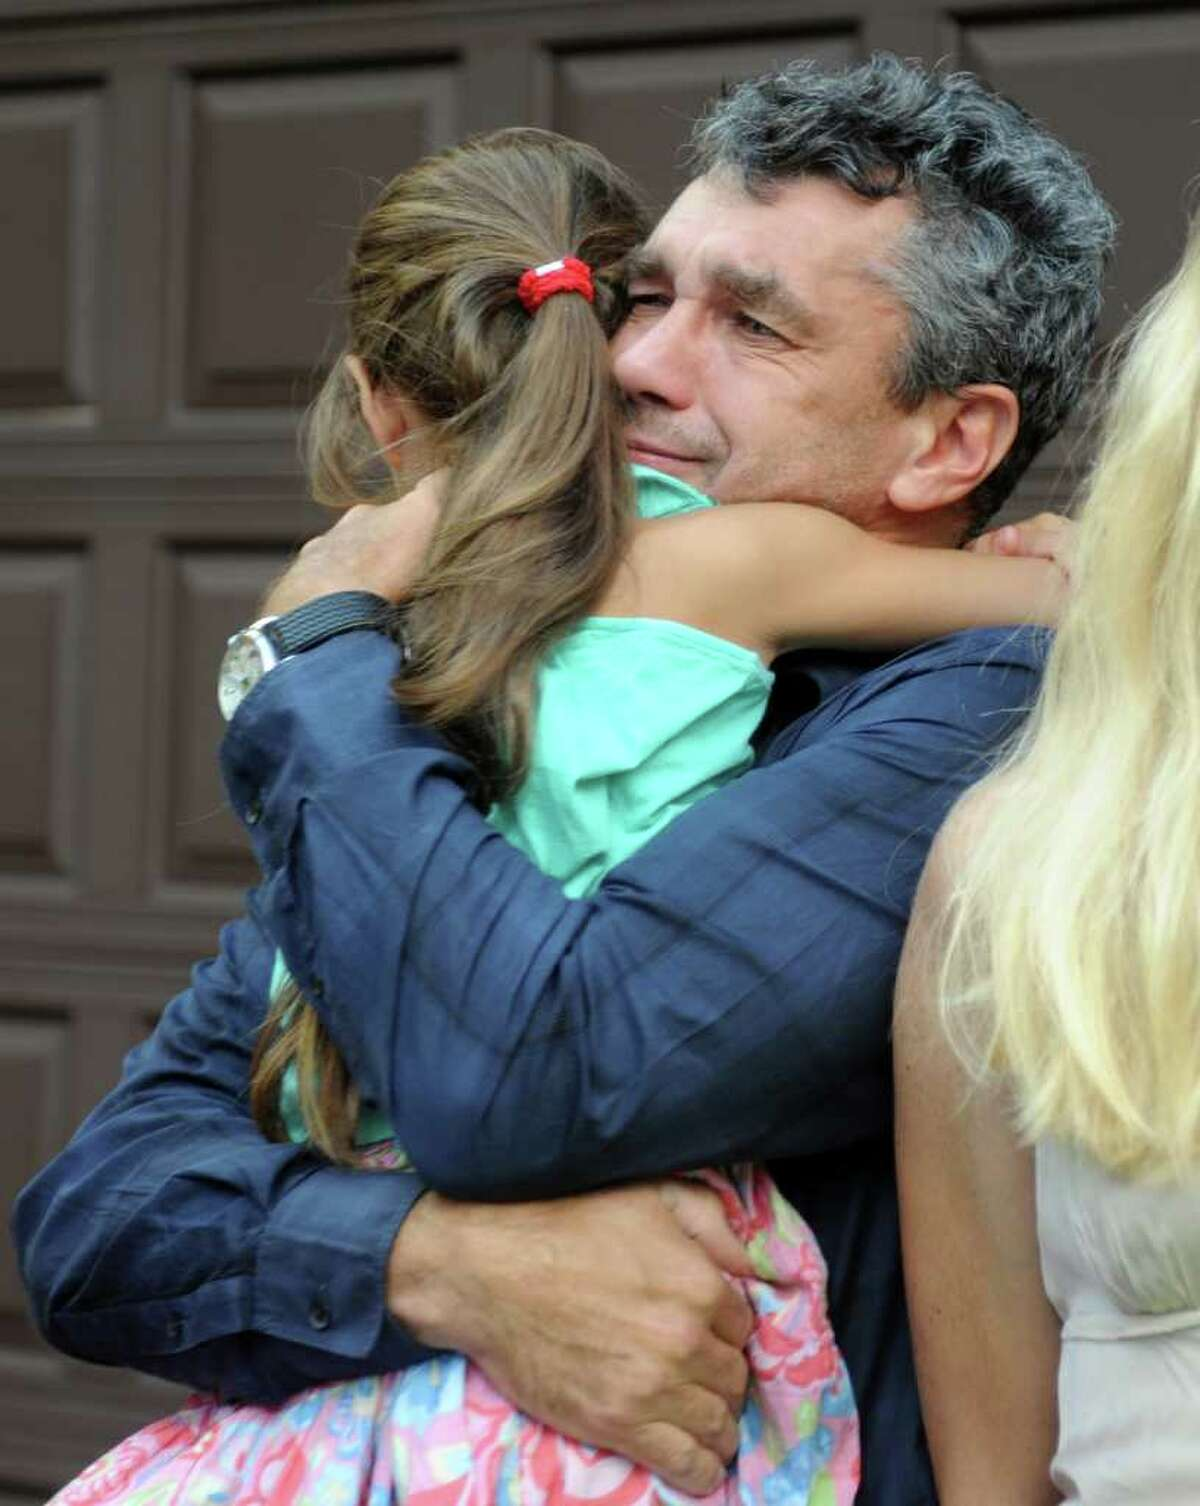 Tomasz Kocab hugs his eight-year-old daughter Zosia Friday, August 12, 2011 upon returning home to Monroe after his release from U.S. Immigration and Customs Enforcement detention in Massachusetts. Kocab was reunited with his family after being granted a six-month reprieve from deportation to Poland.